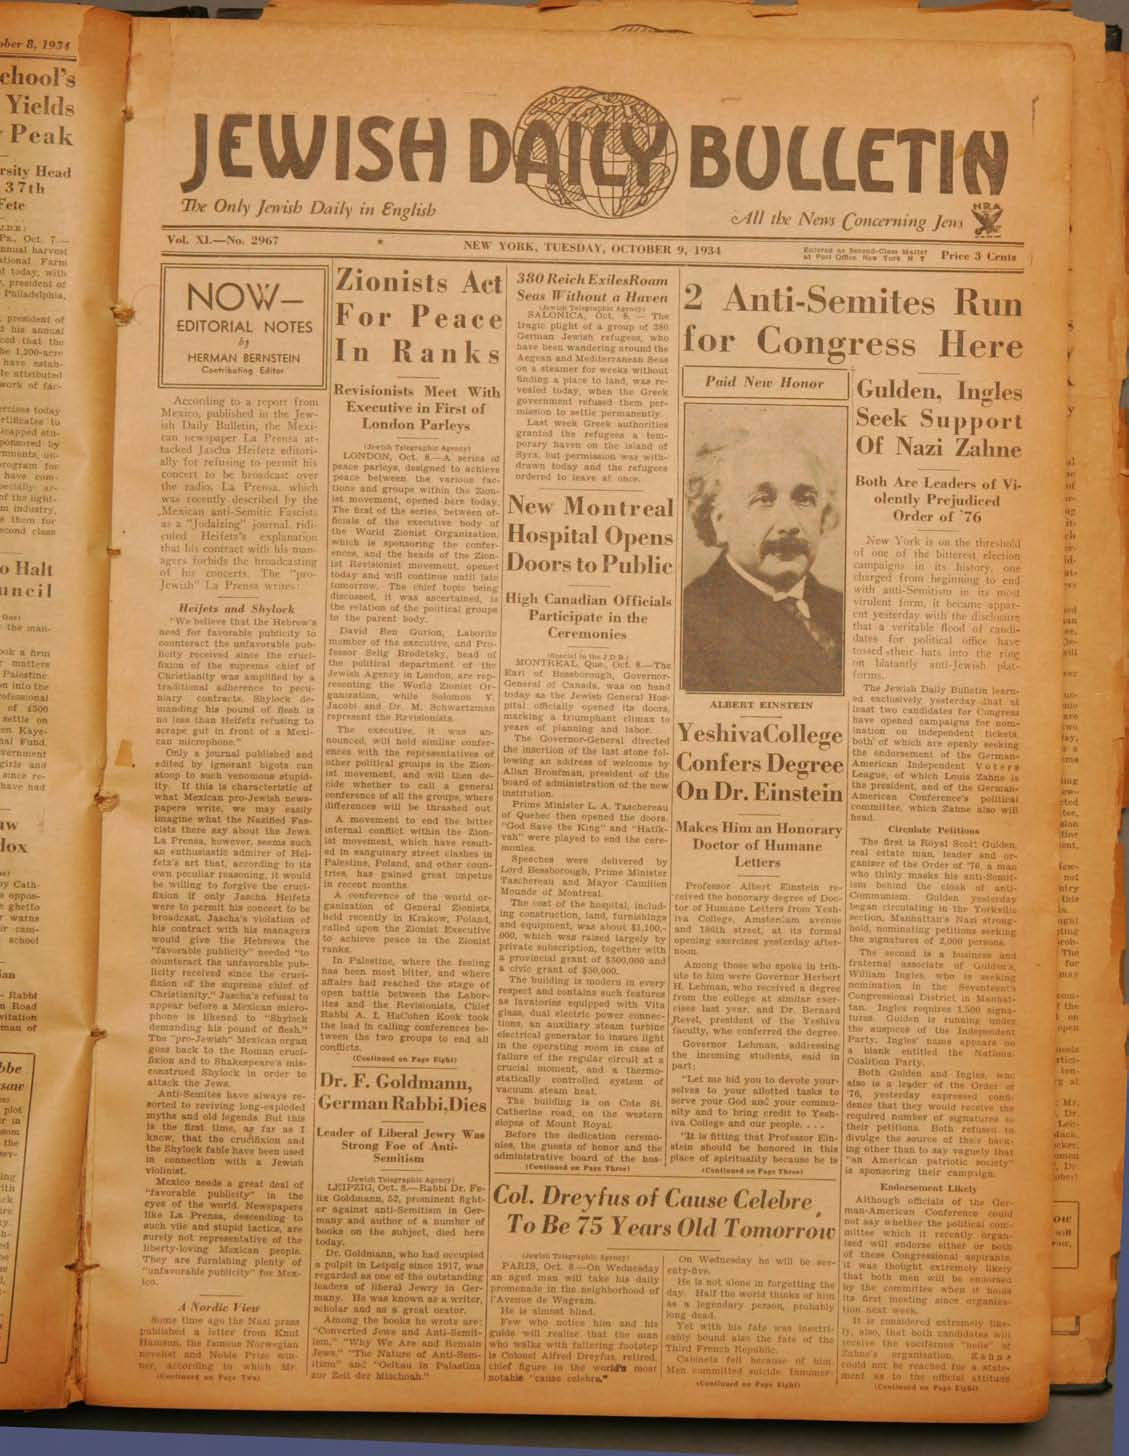 The Only Jewish Daily in English